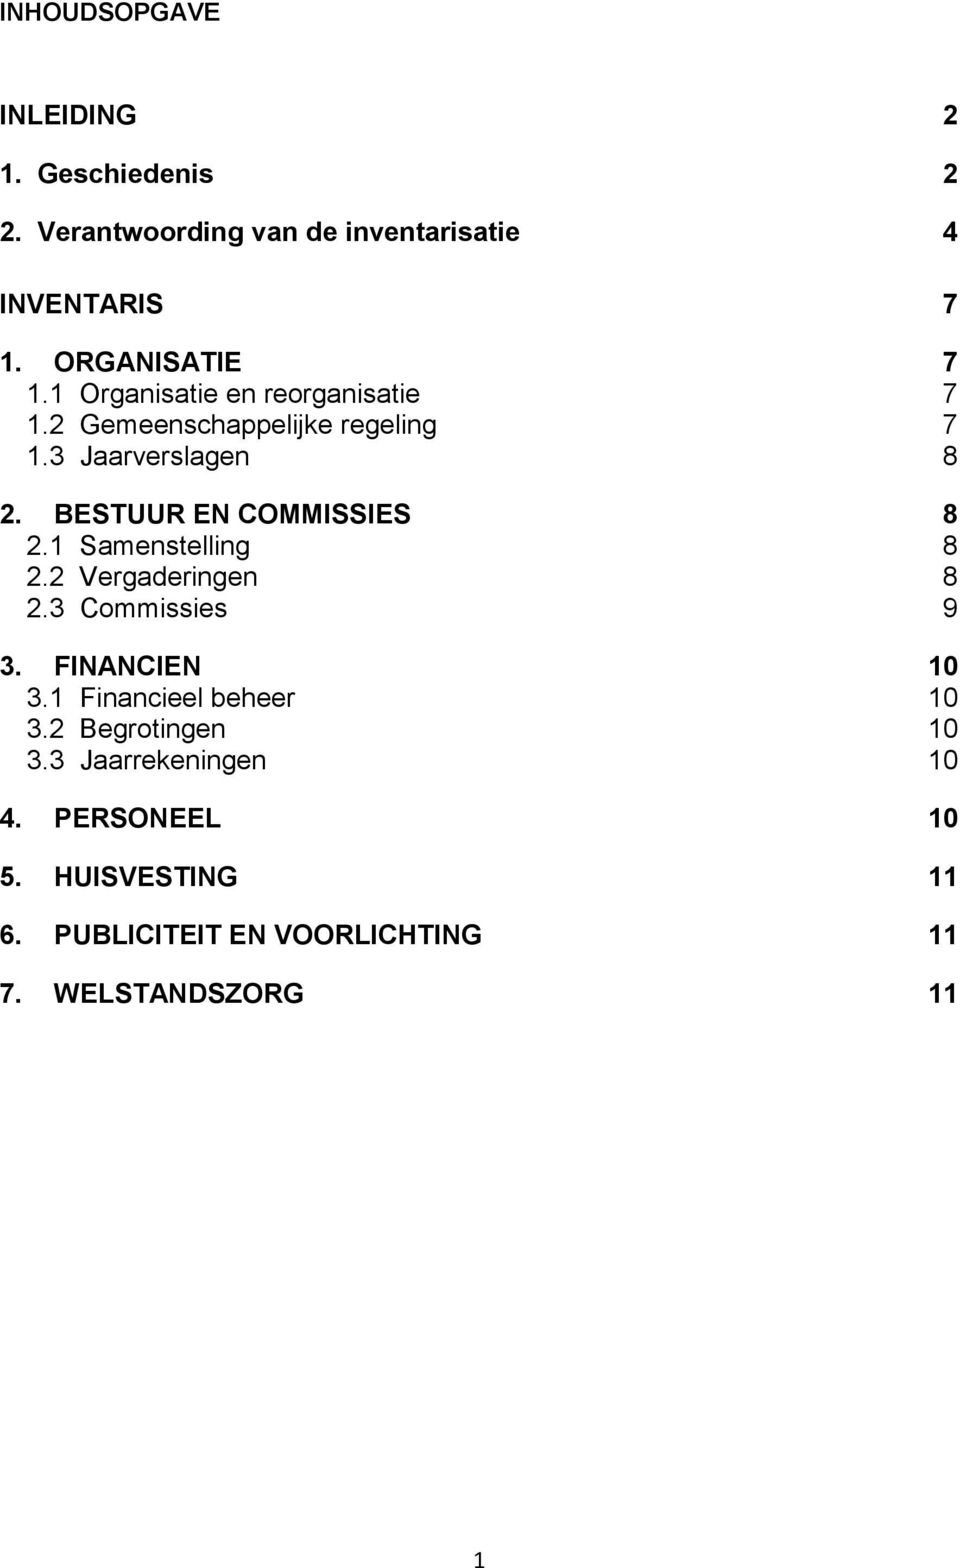 BESTUUR EN COMMISSIES 8 2.1 Samenstelling 8 2.2 Vergaderingen 8 2.3 Commissies 9 3. FINANCIEN 10 3.